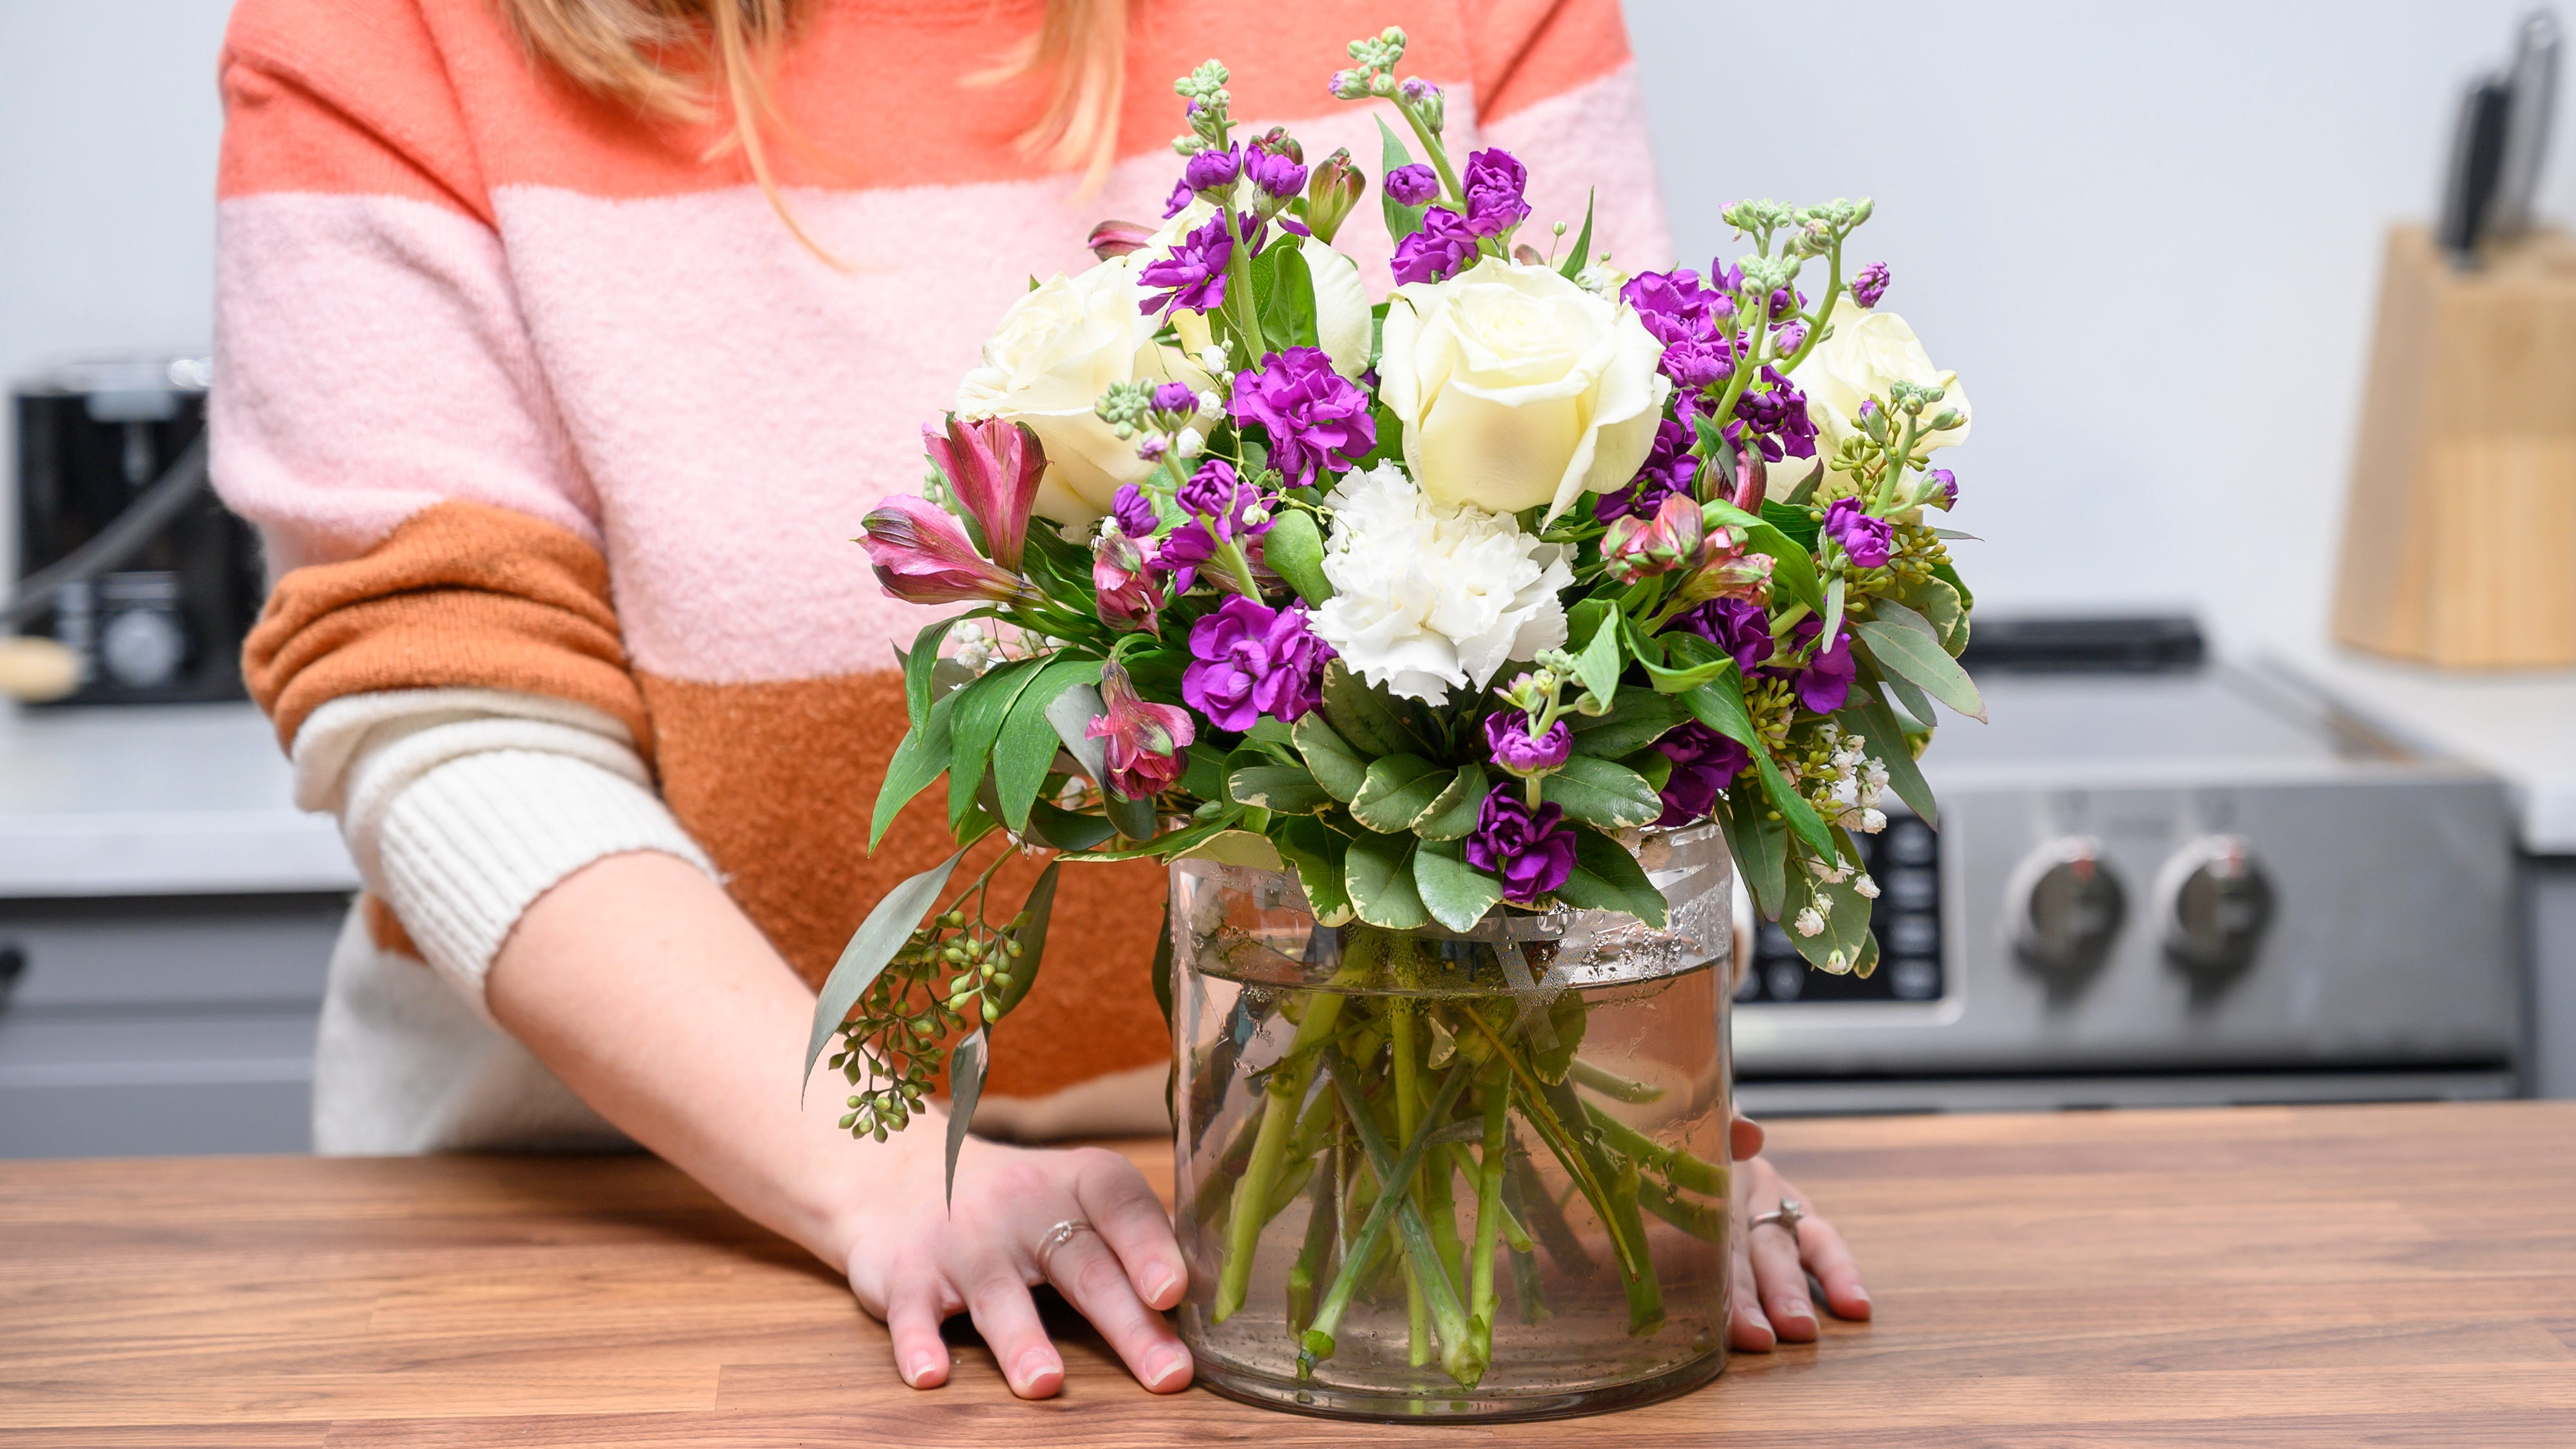 The best flower deals to shop for Valentine's Day 2021